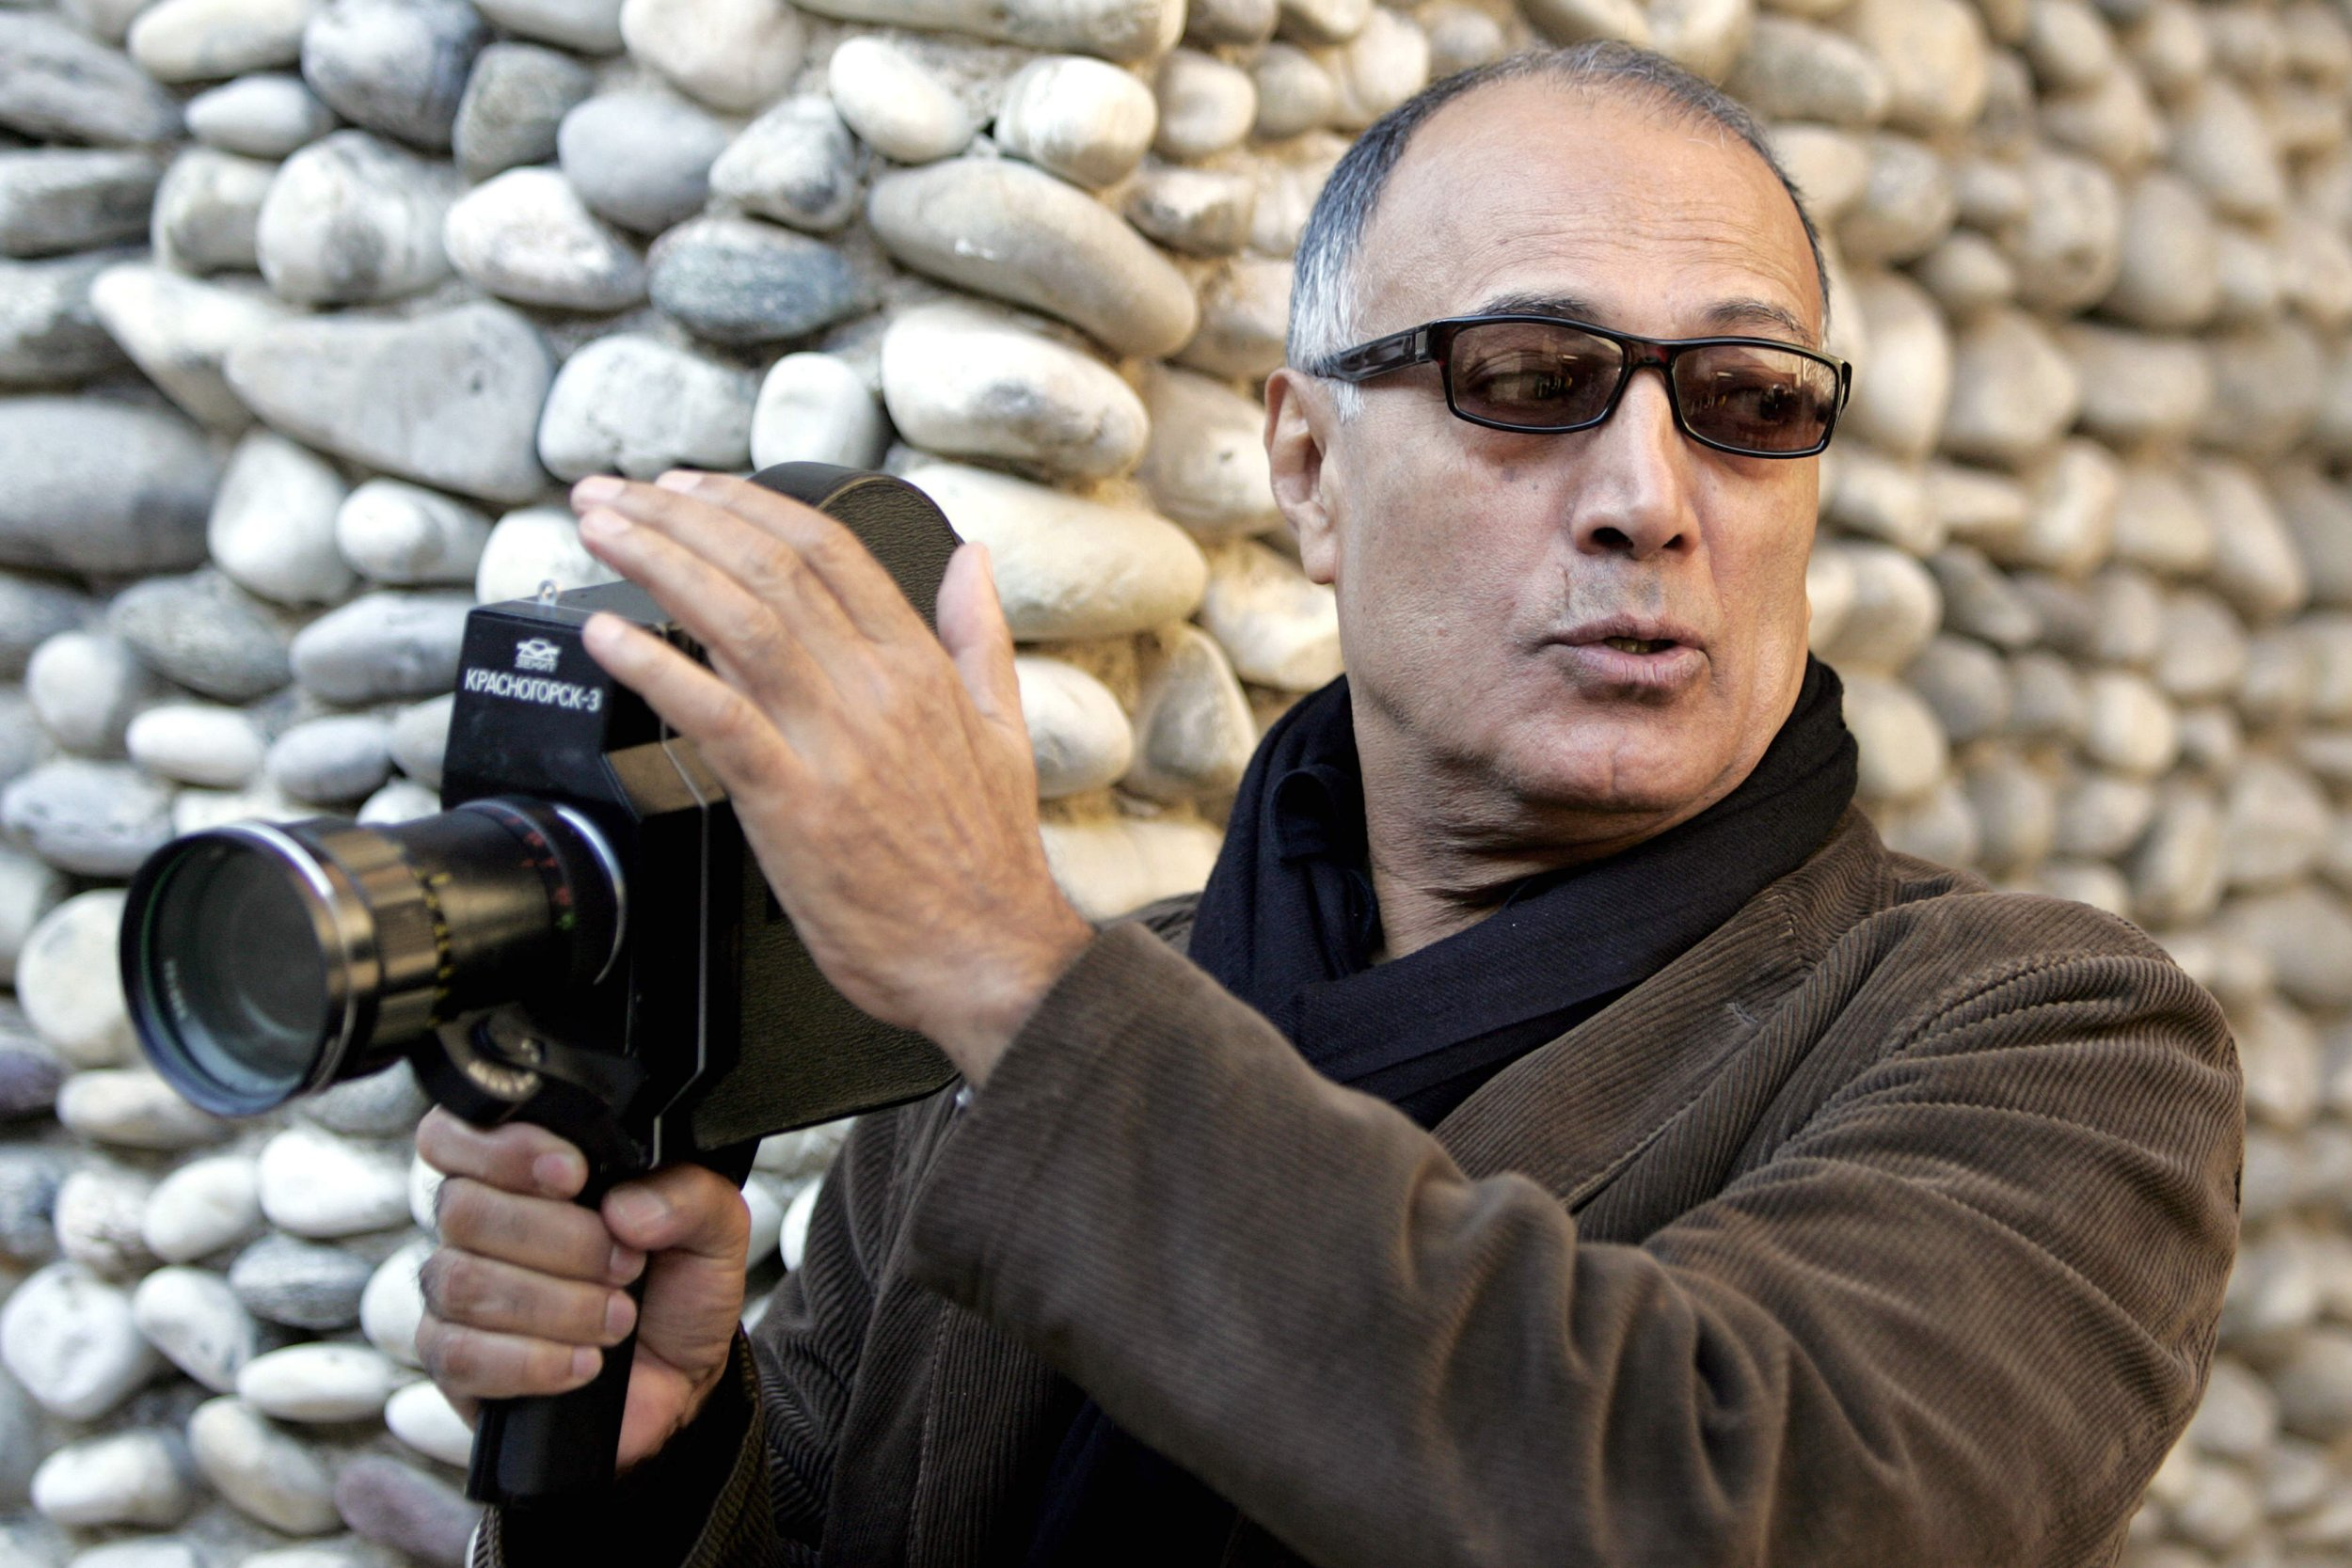 (FILES) This file photo taken on December 4, 2007 shows internationally acclaimed Iranian film maker Abbas Kiarostami giving instructions during a course with students of the Villa Arson art school in Nice. Famed Iranian director Kiarostami died aged 76 in Paris on July 4, 2016, Iranian media reported. / AFP PHOTO / ERIC ESTRADEERIC ESTRADE/AFP/Getty Images